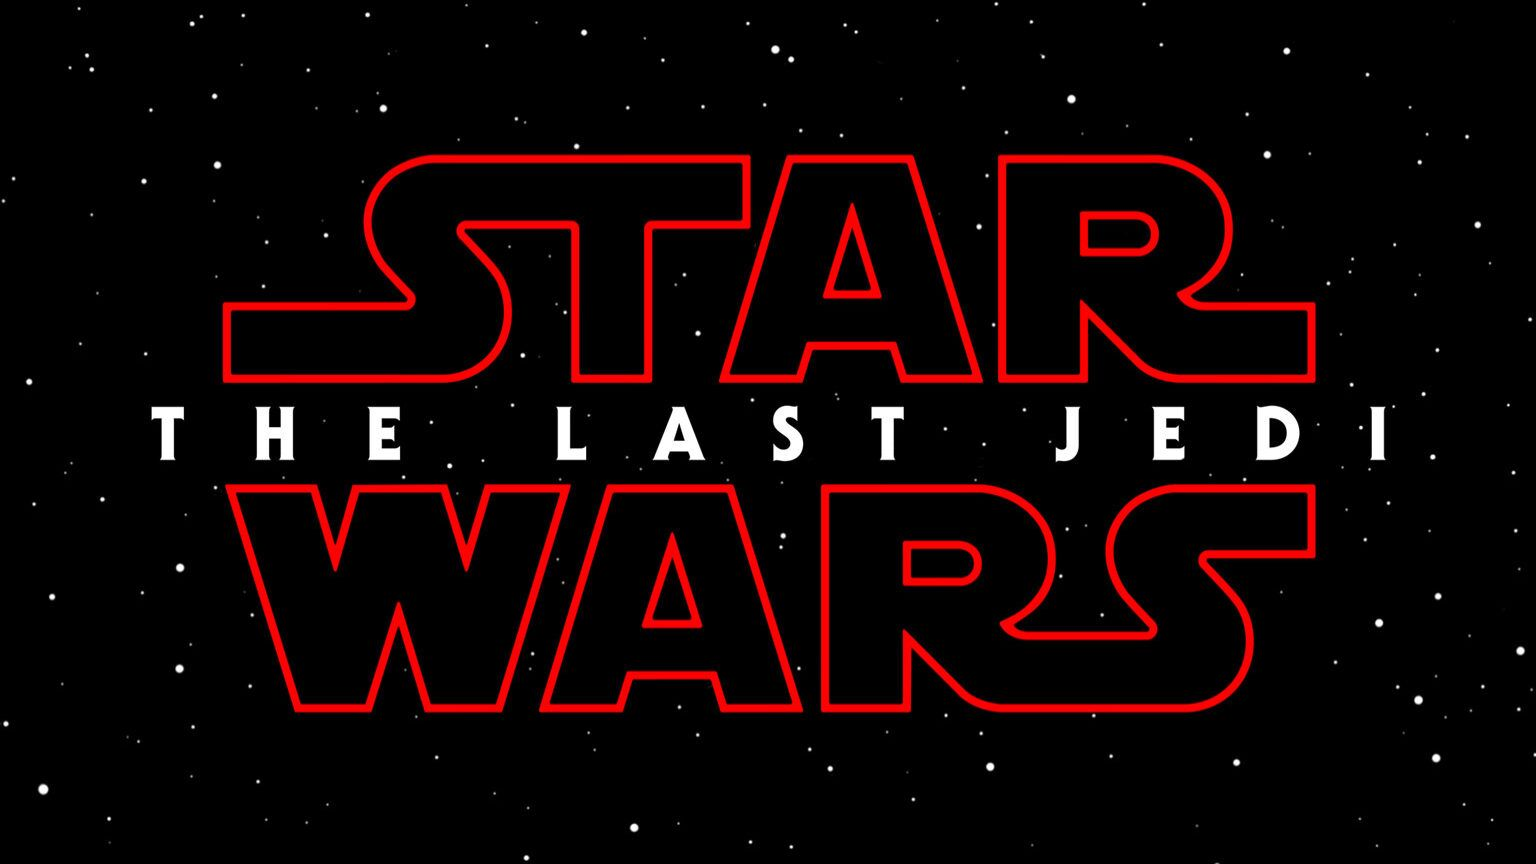 Star Wars: The Last Jedi Easter eggs you may have missed